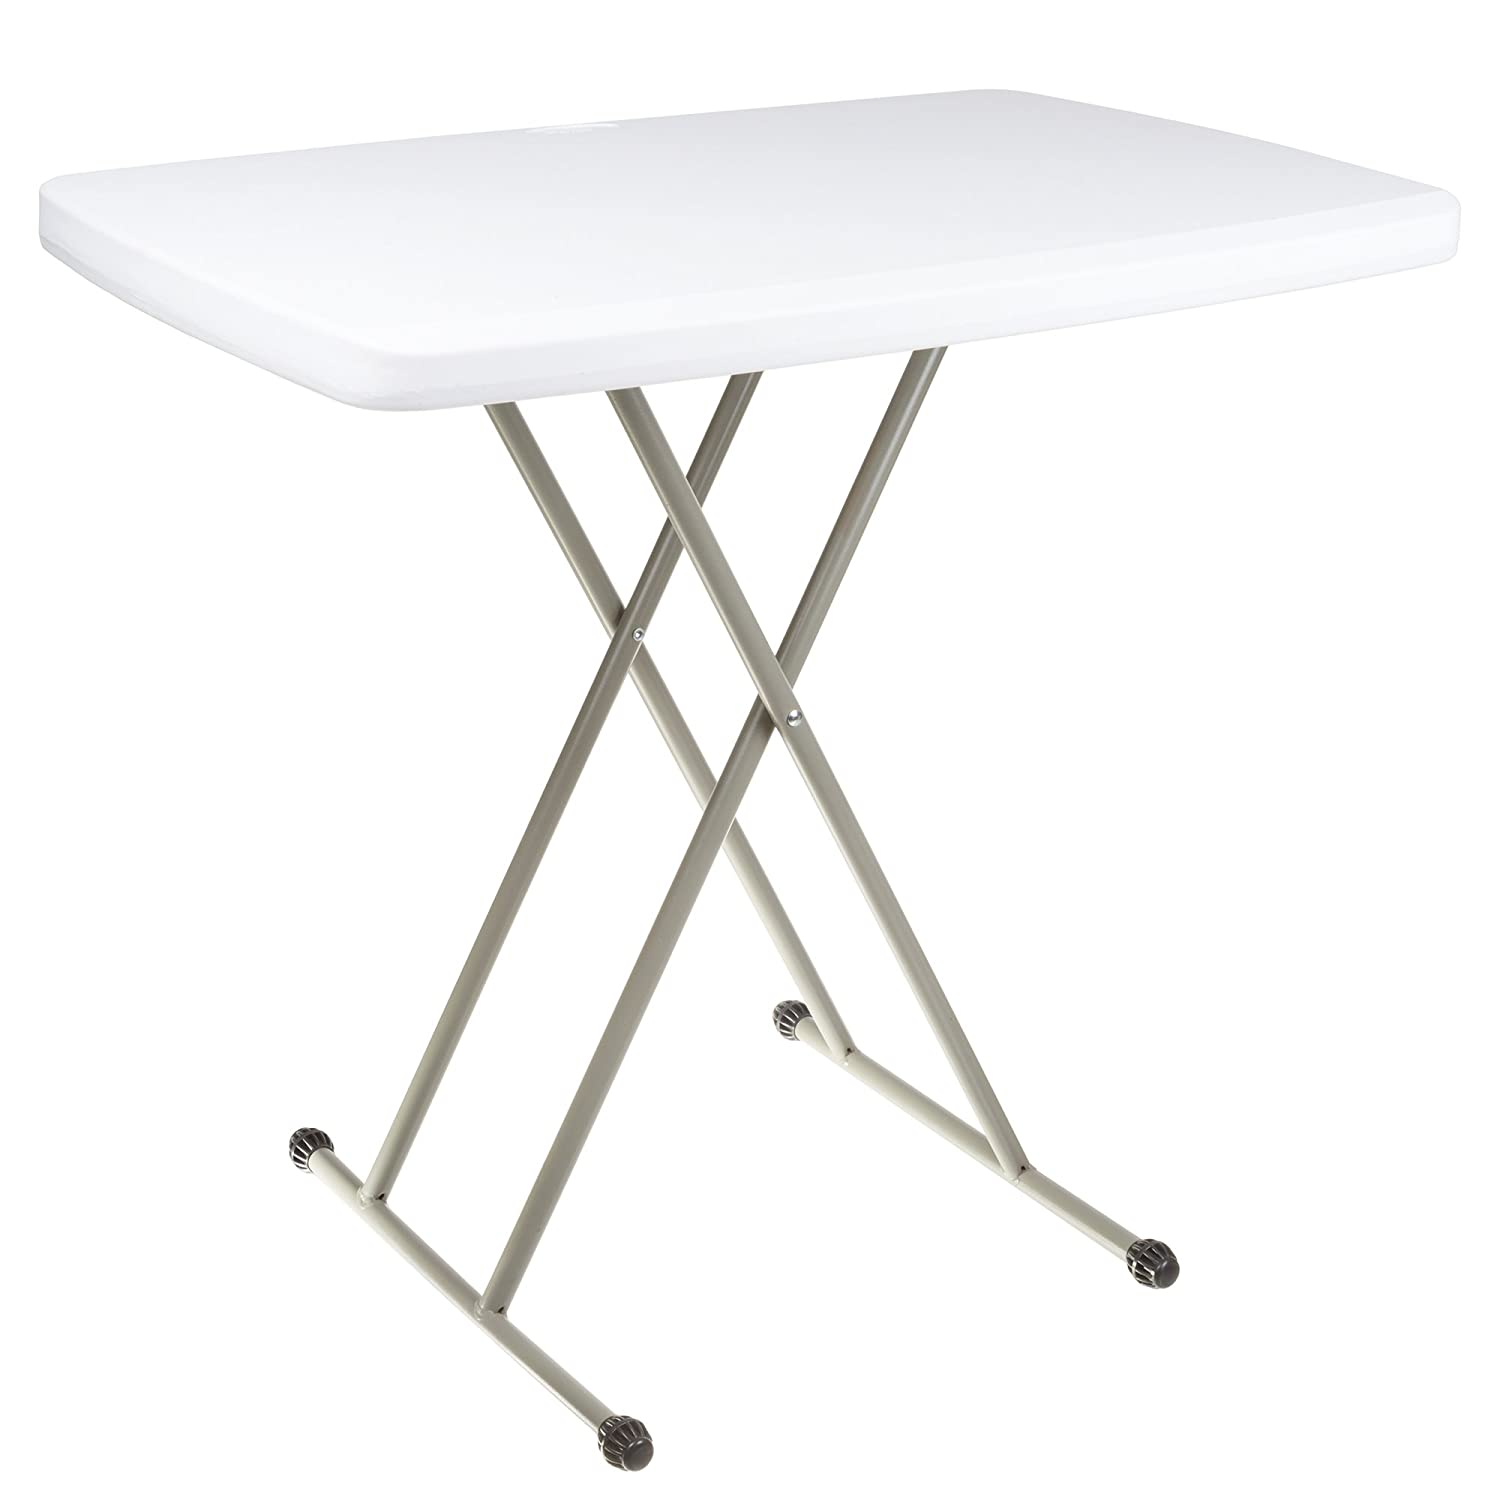 Everyday Home Folding Table, Foldable Table and TV Tray, 30 x 20 x 28 Great for Laptops